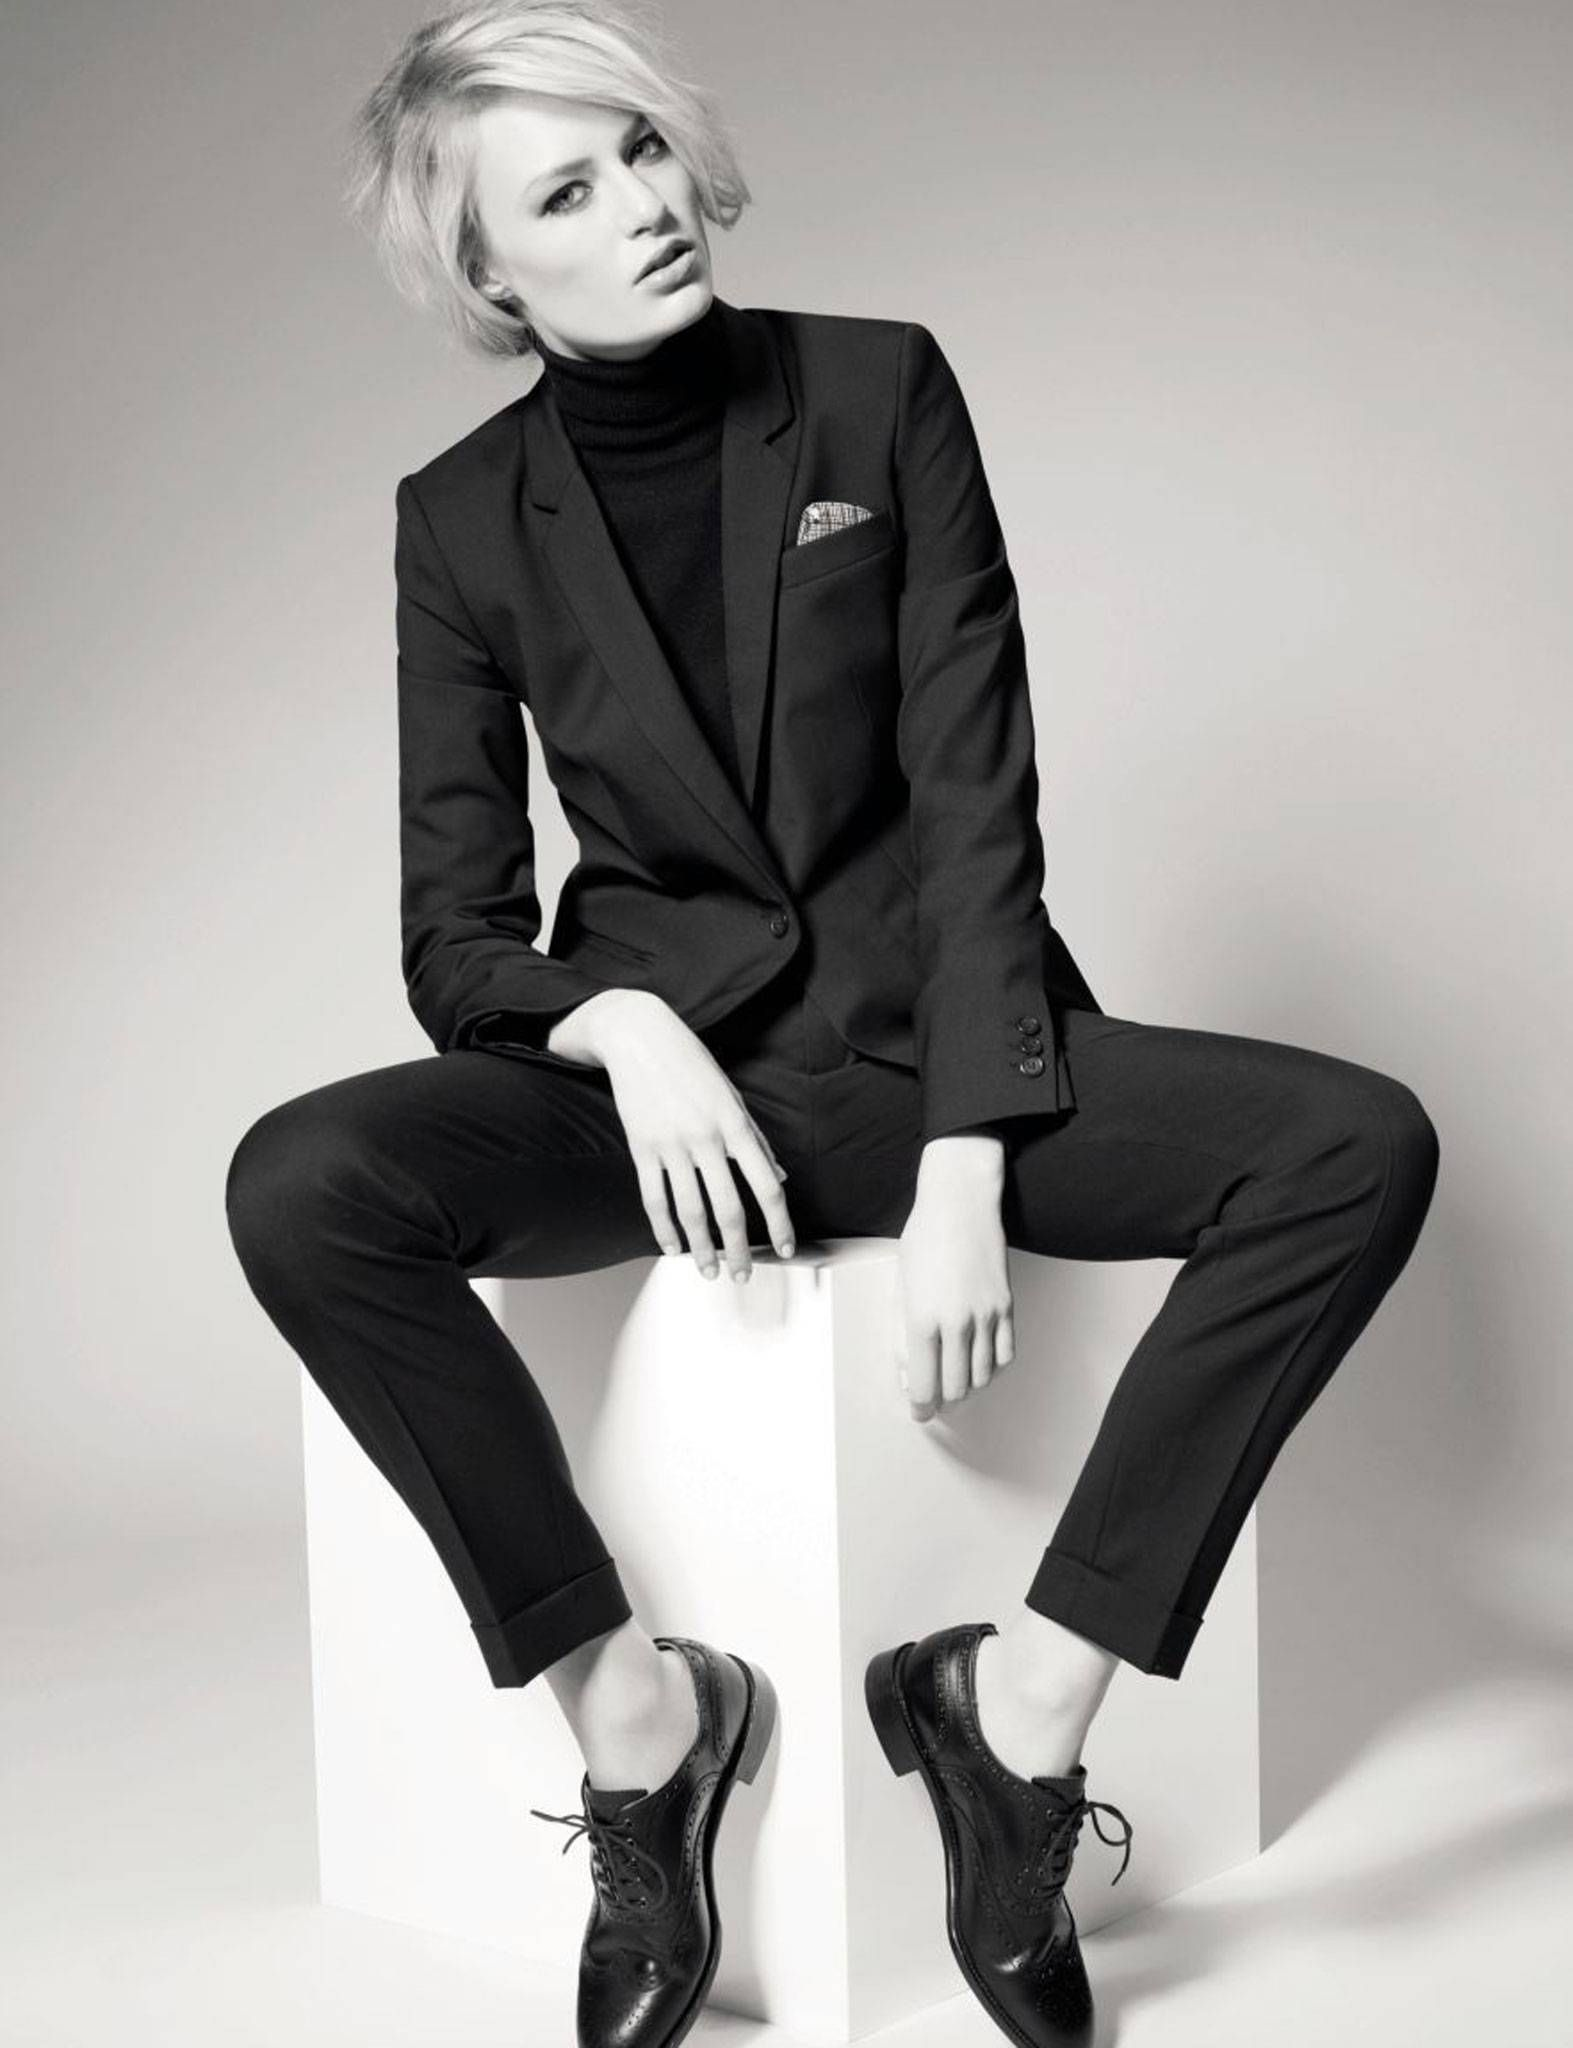 968c0319e46bc women in suits - Google Search